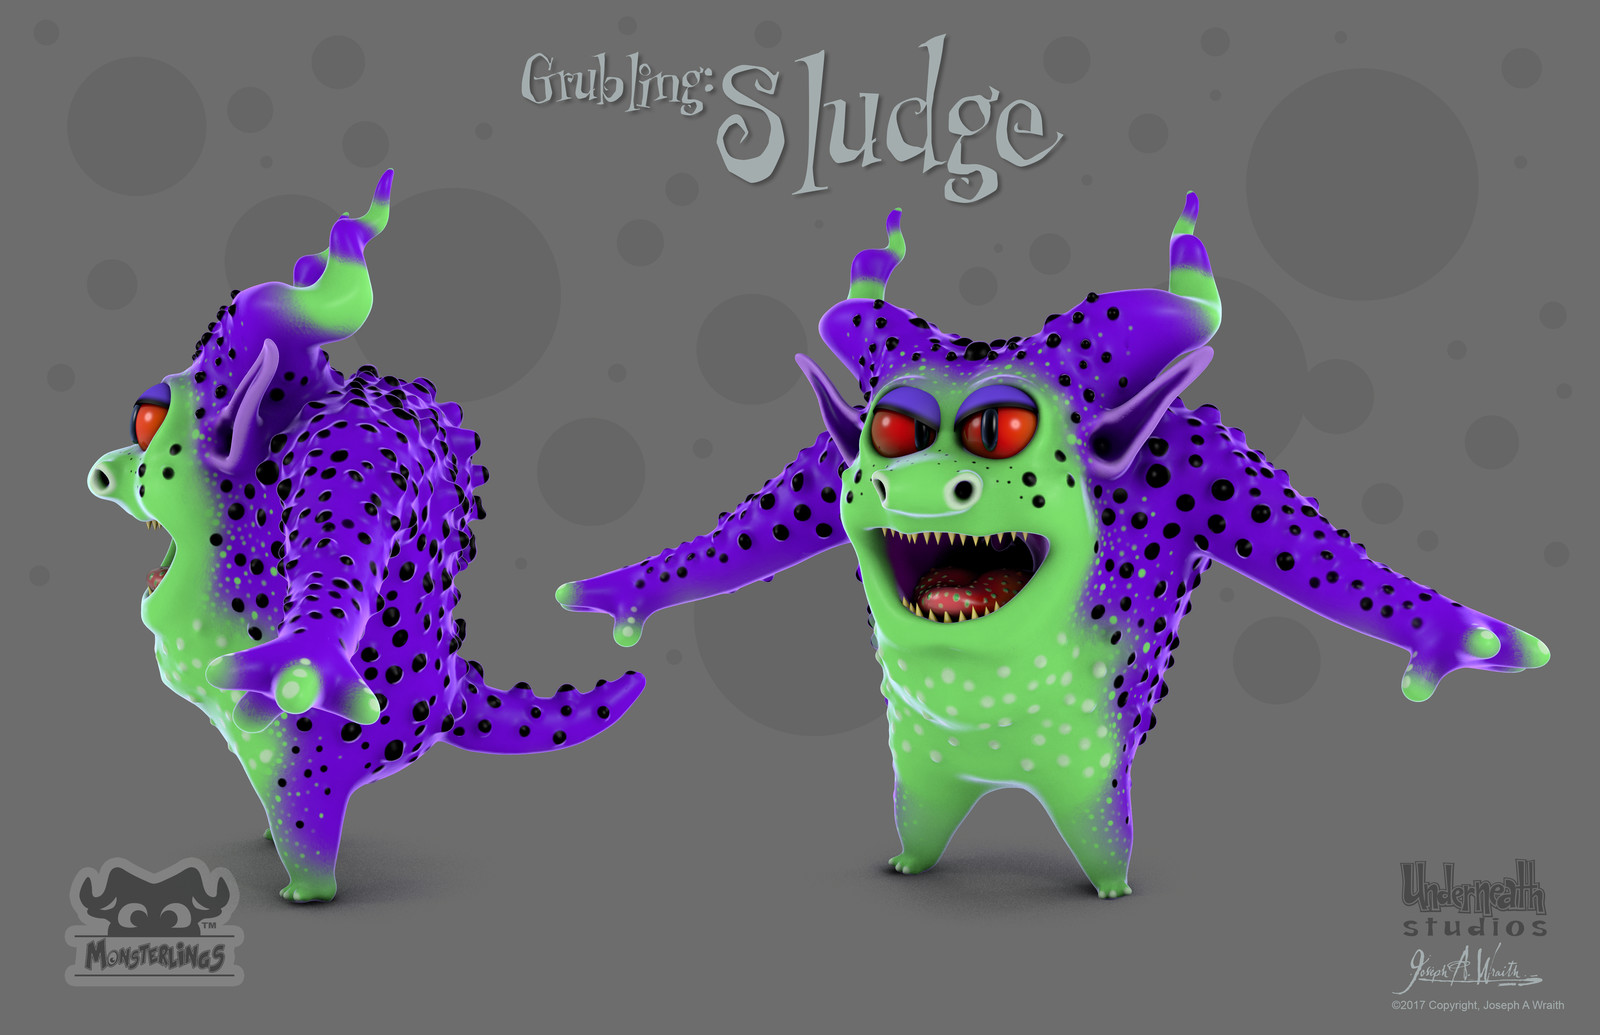 Monsterlings: Grubling - Sludge